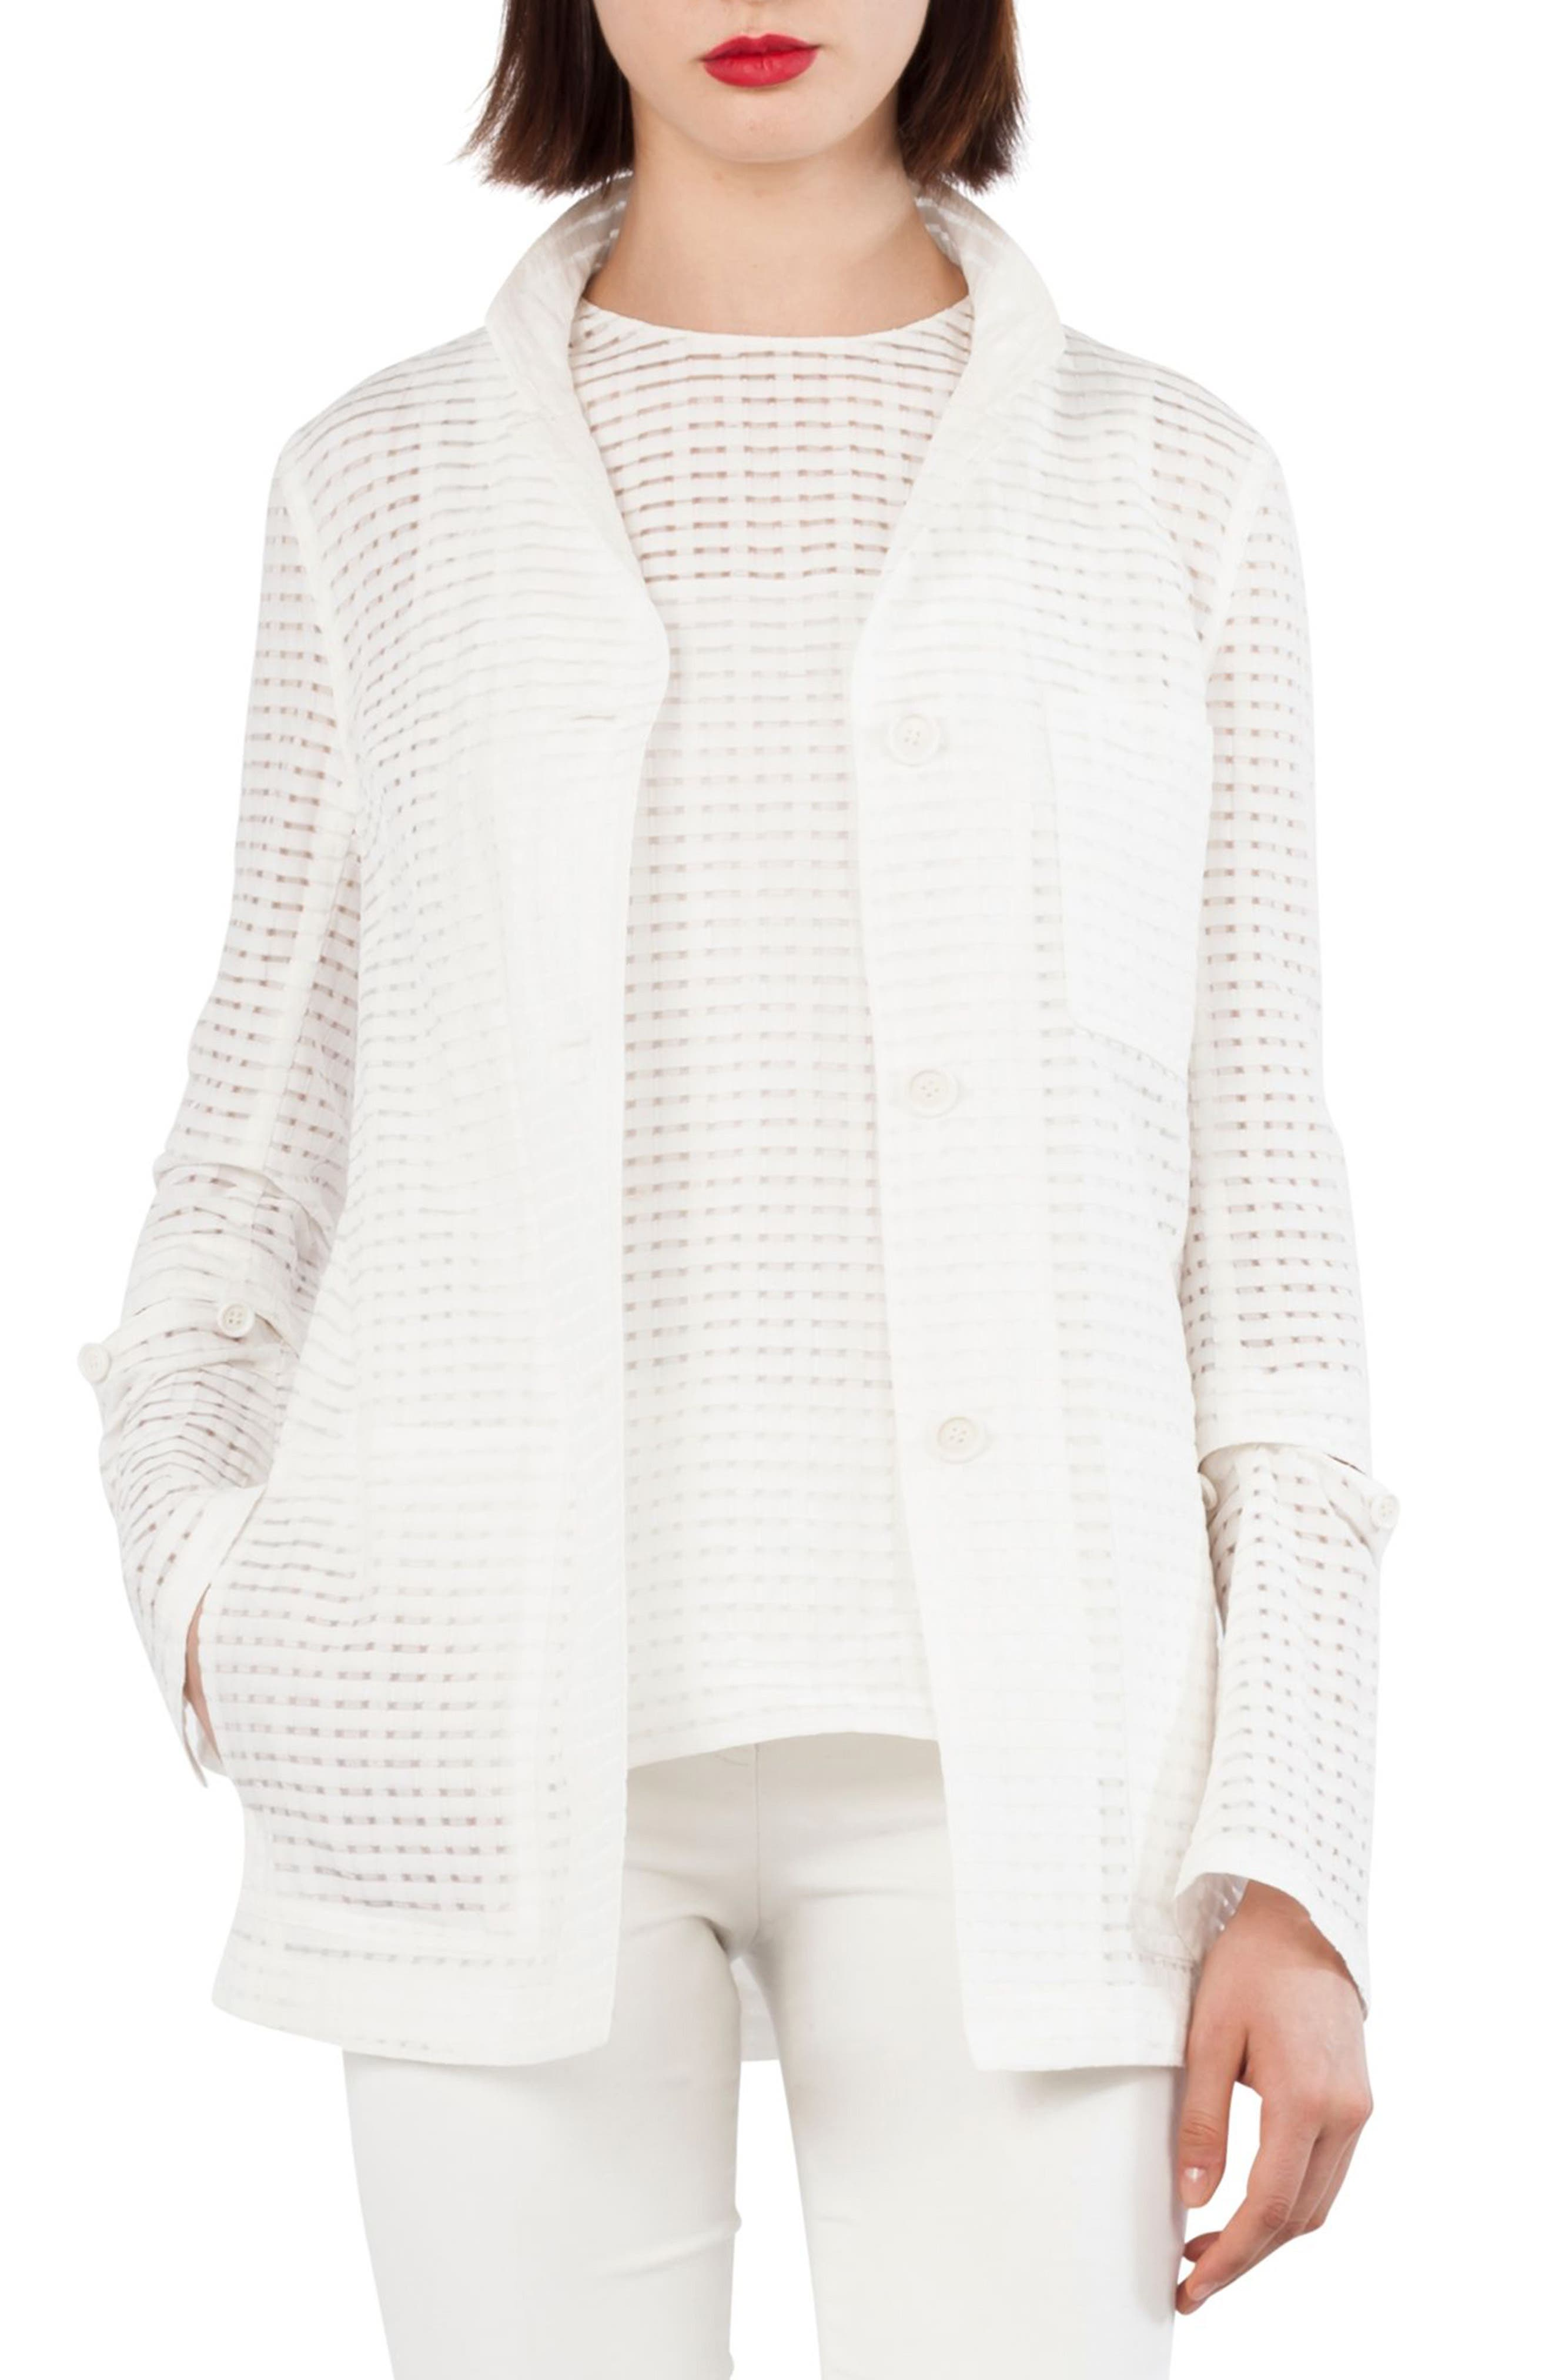 Openweave Silk & Cotton Blend Jacket with Detachable Cuffs,                         Main,                         color, 900